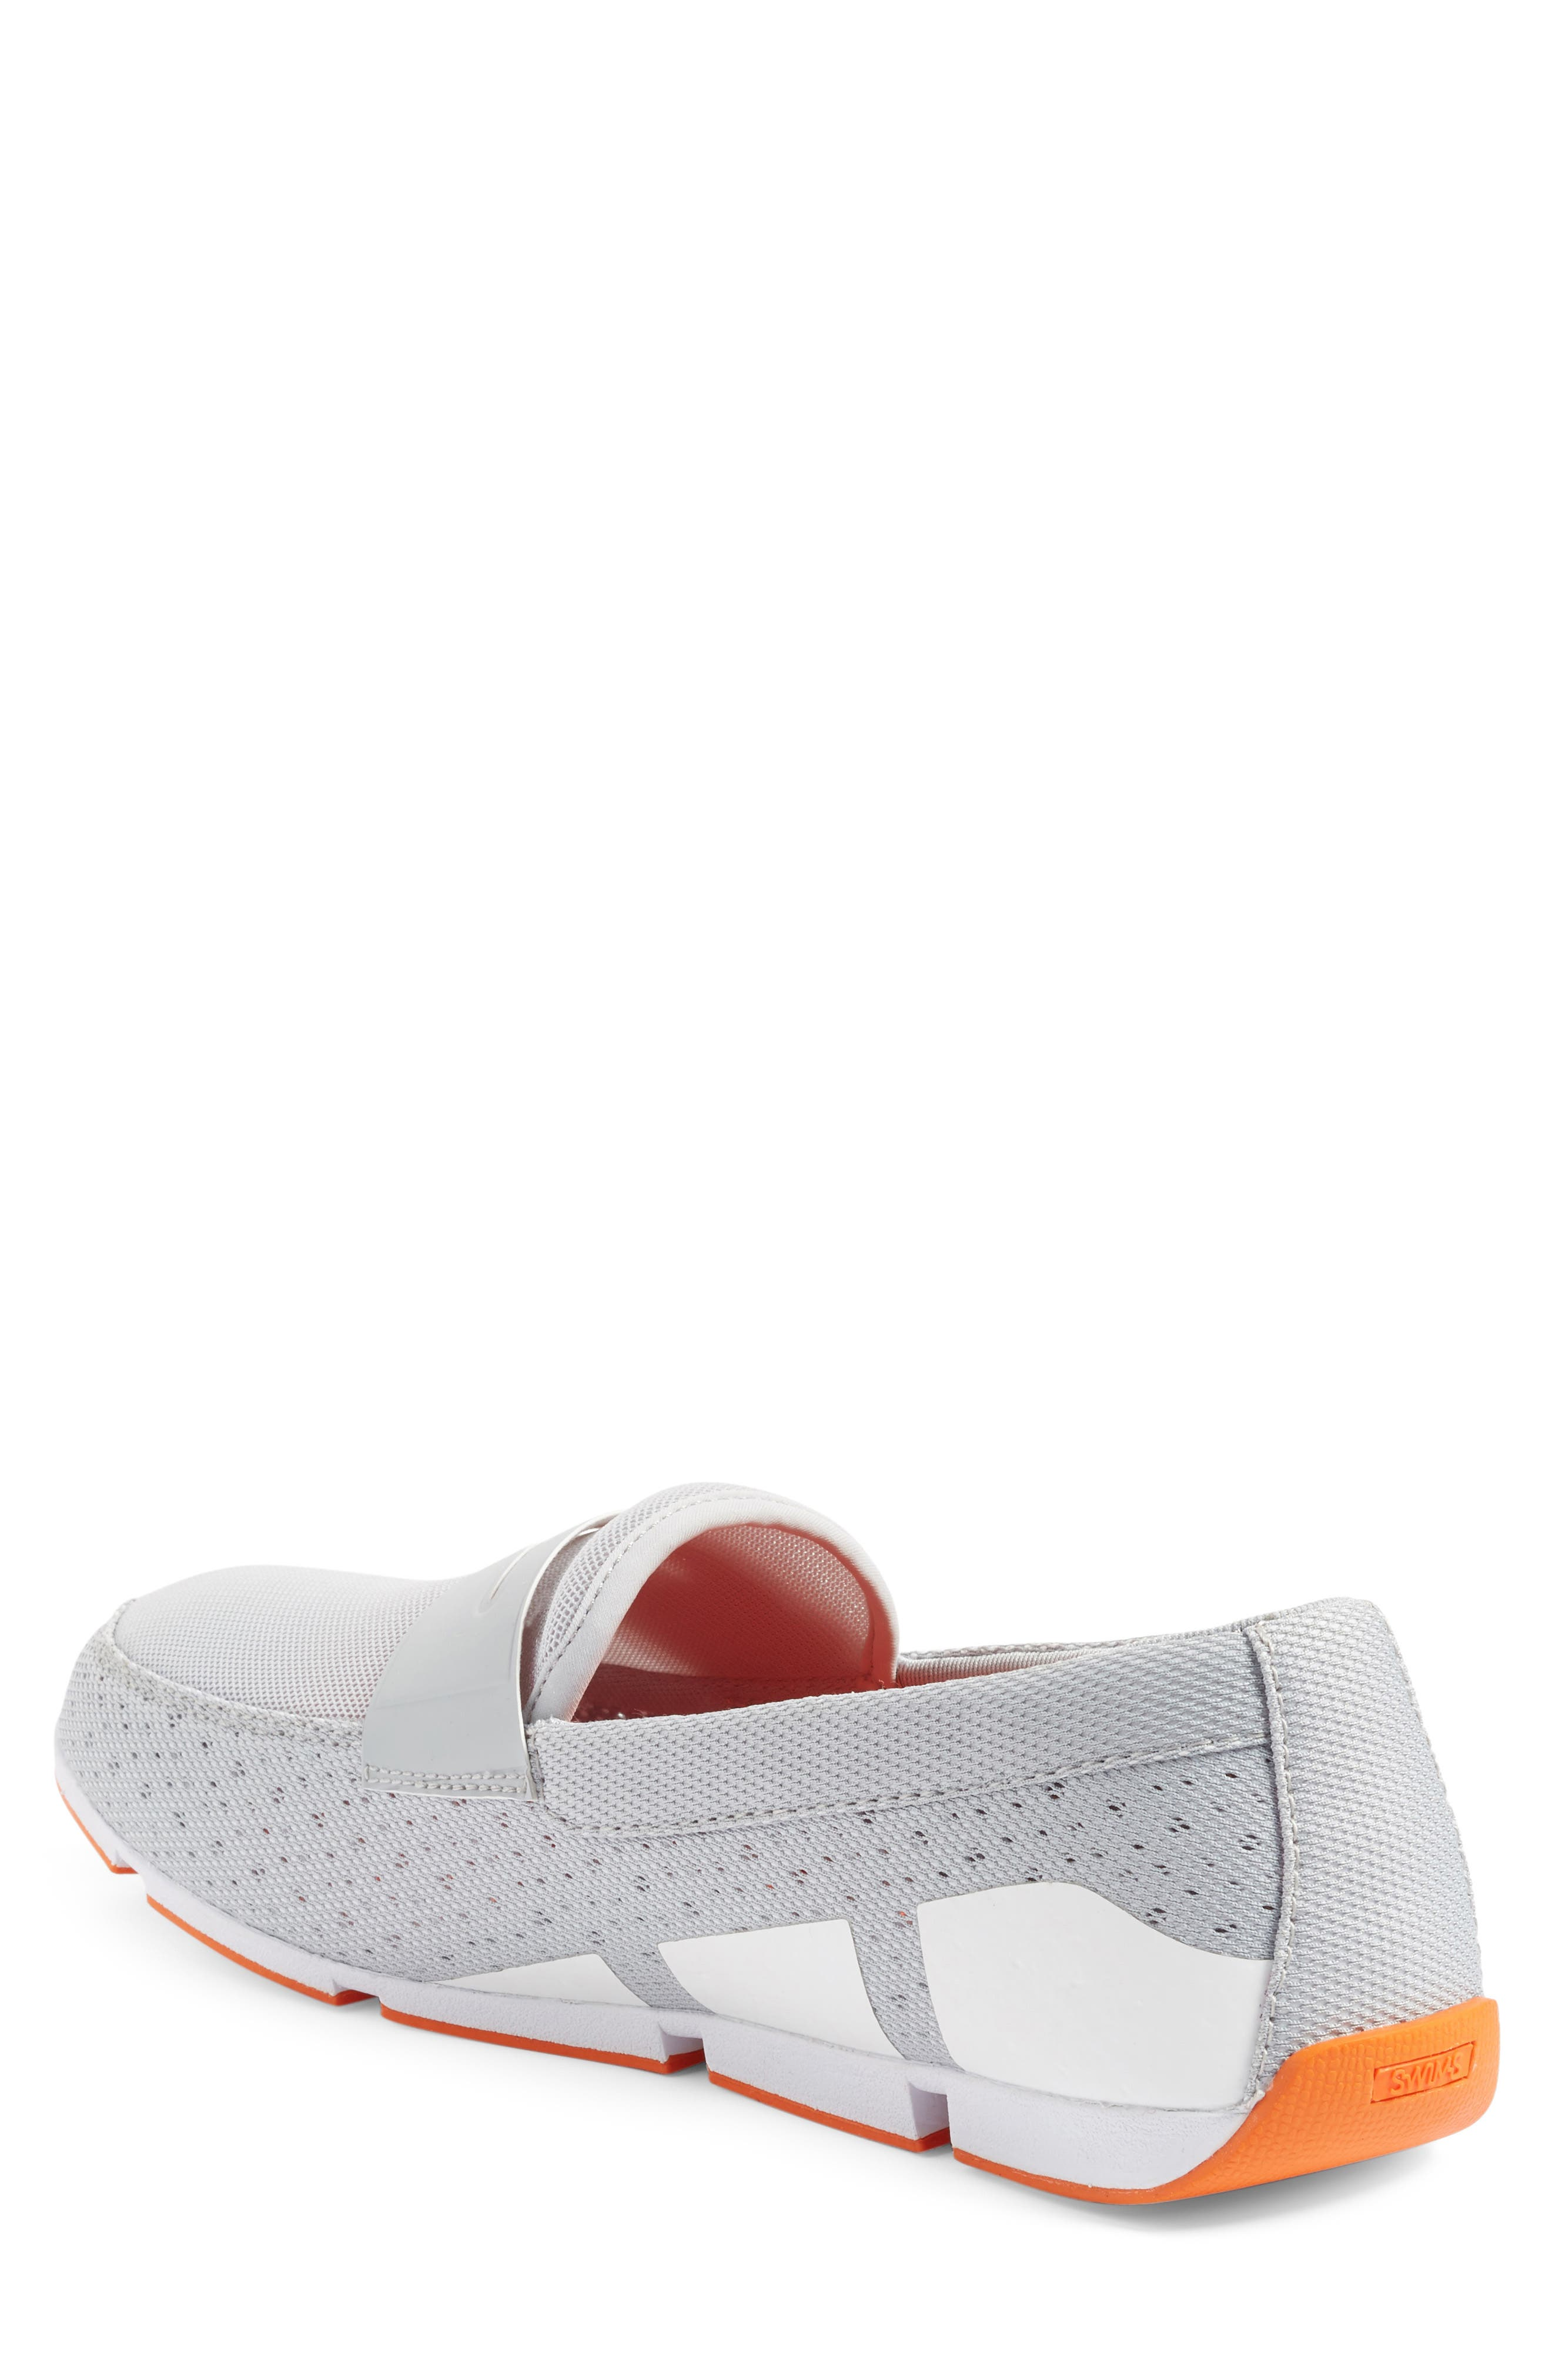 Breeze Penny Loafer,                             Alternate thumbnail 12, color,